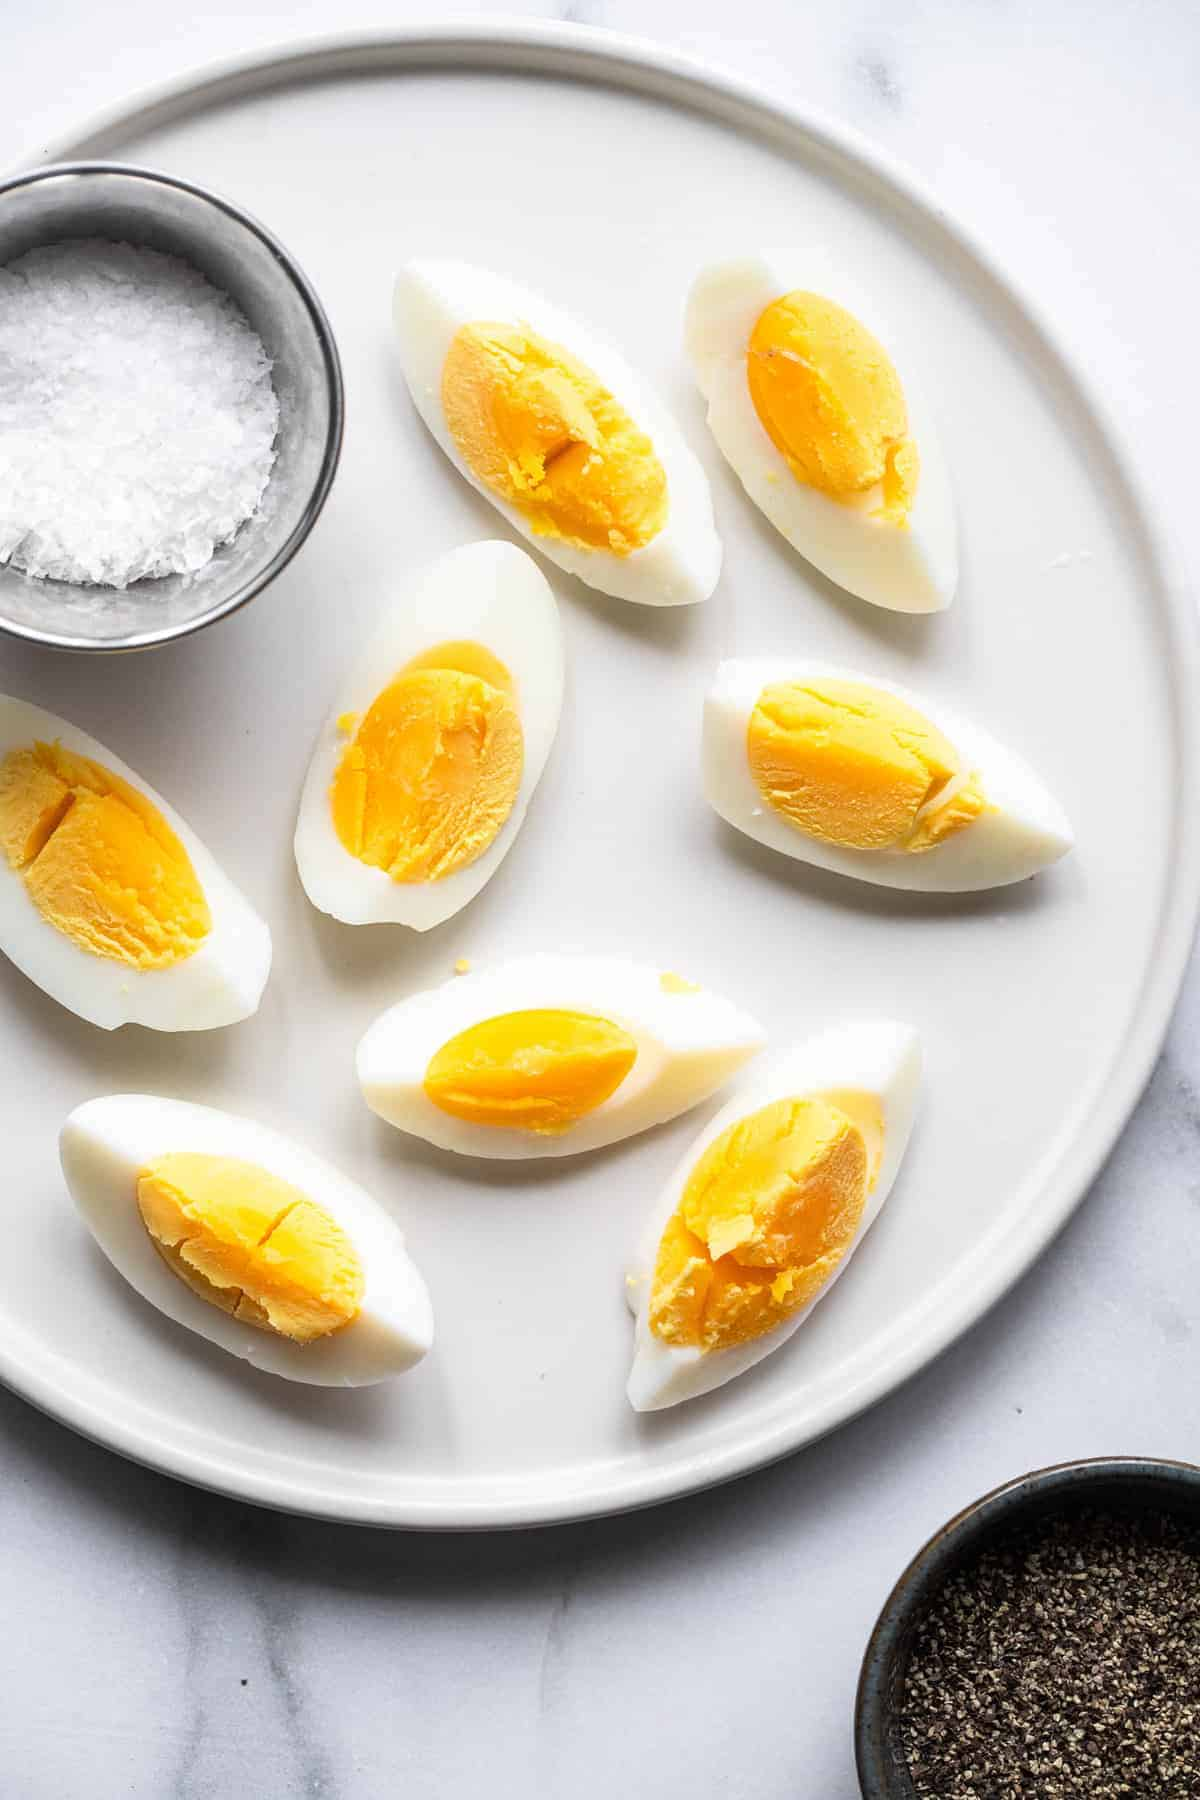 sliced air fryer hard boiled eggs on a plate with a bowl of salt